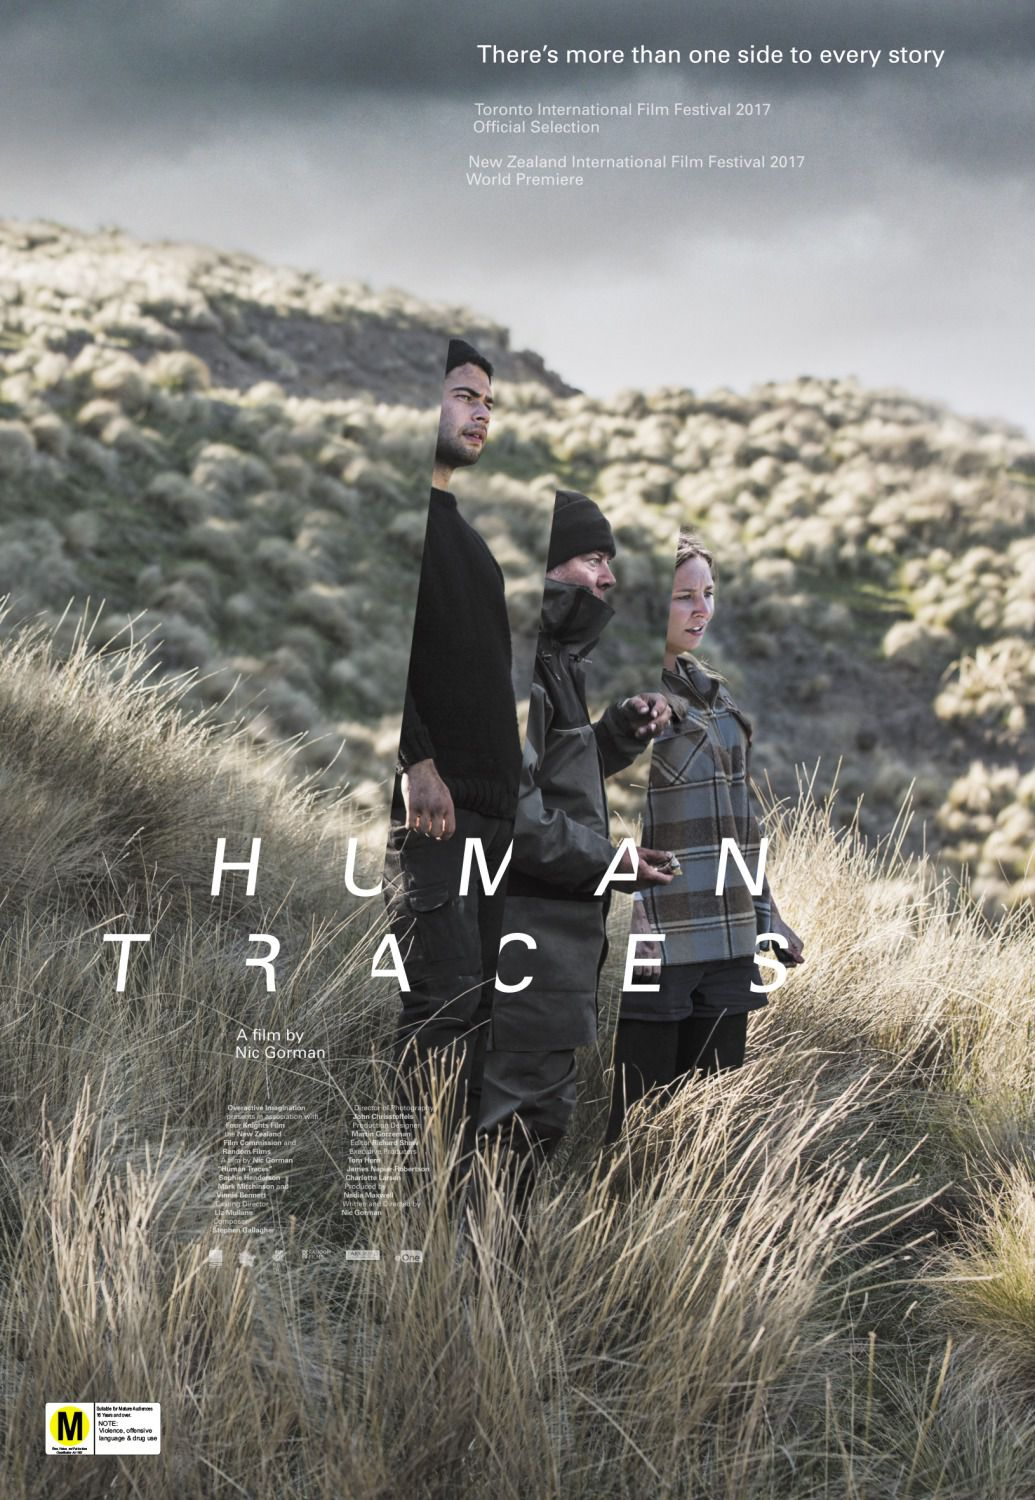 Human Traces - There's more than one side to every story - film poster